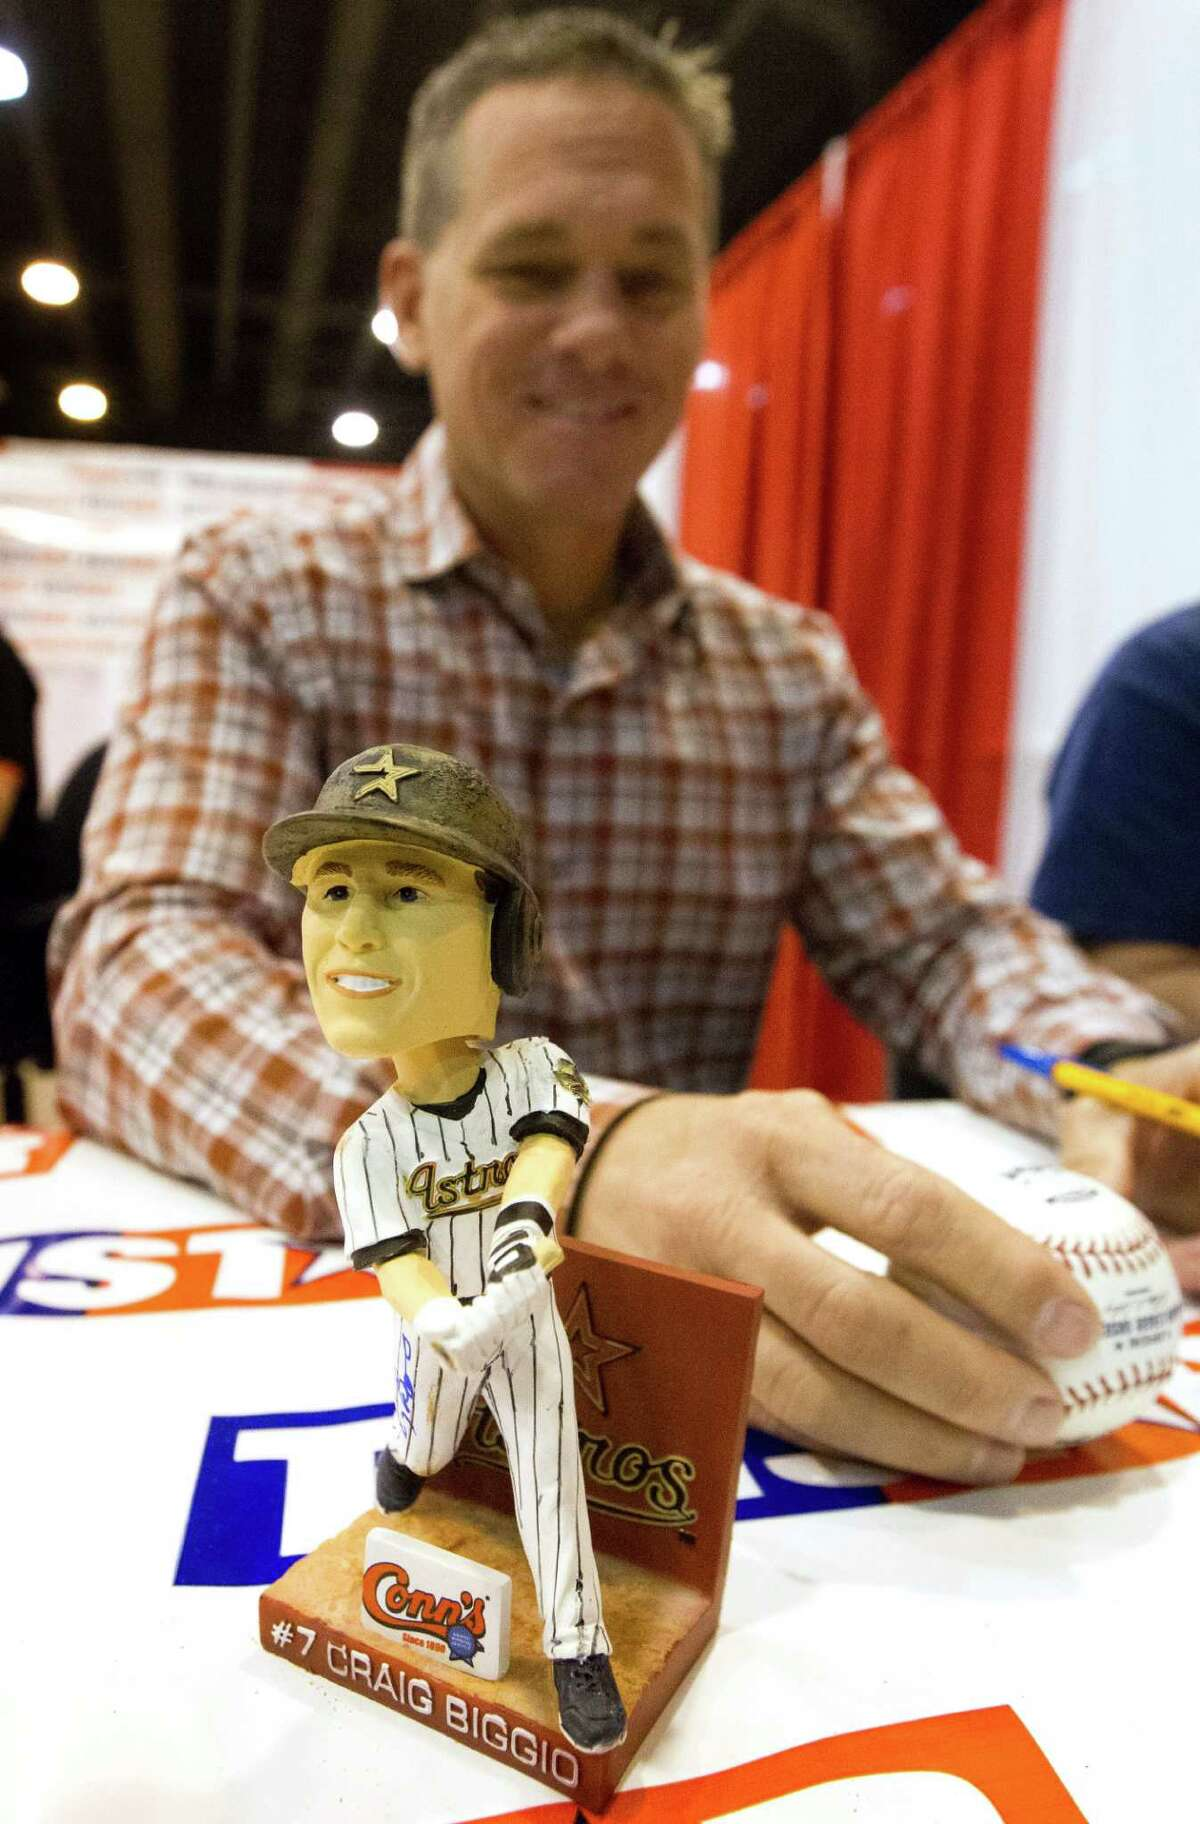 Former Houston Astro Craig Biggio signs a bobble head doll of himself during the Tristar autograph show at NRG park on Sunday, Feb. 15, 2015, in Houston.